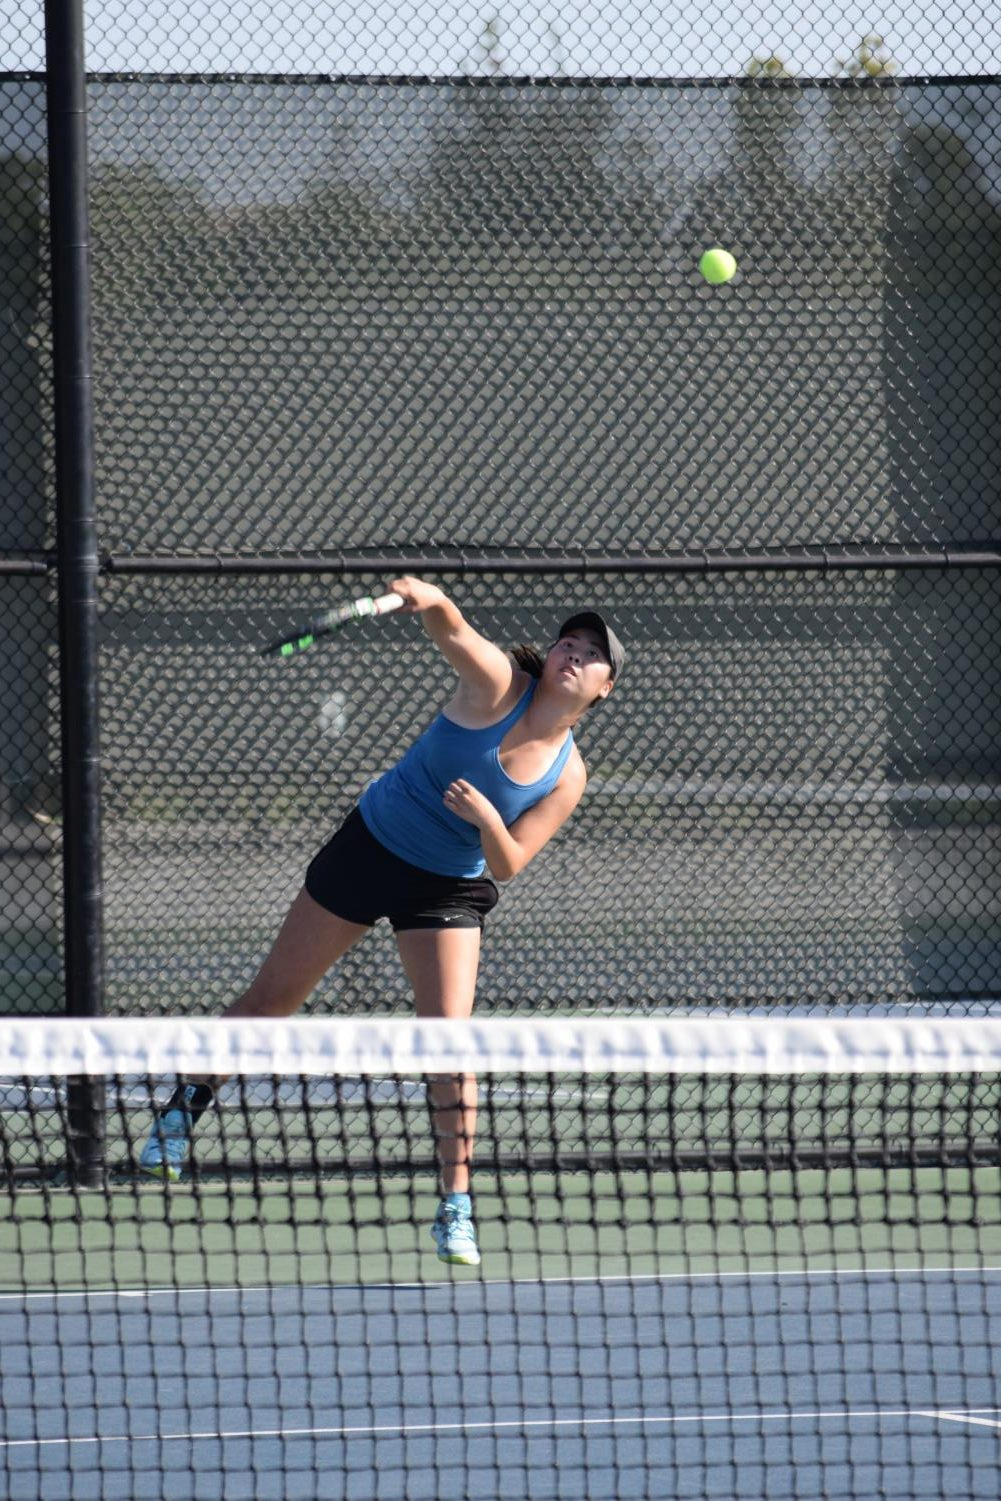 Senior Christina Wang volleys against Sydney Pournaras